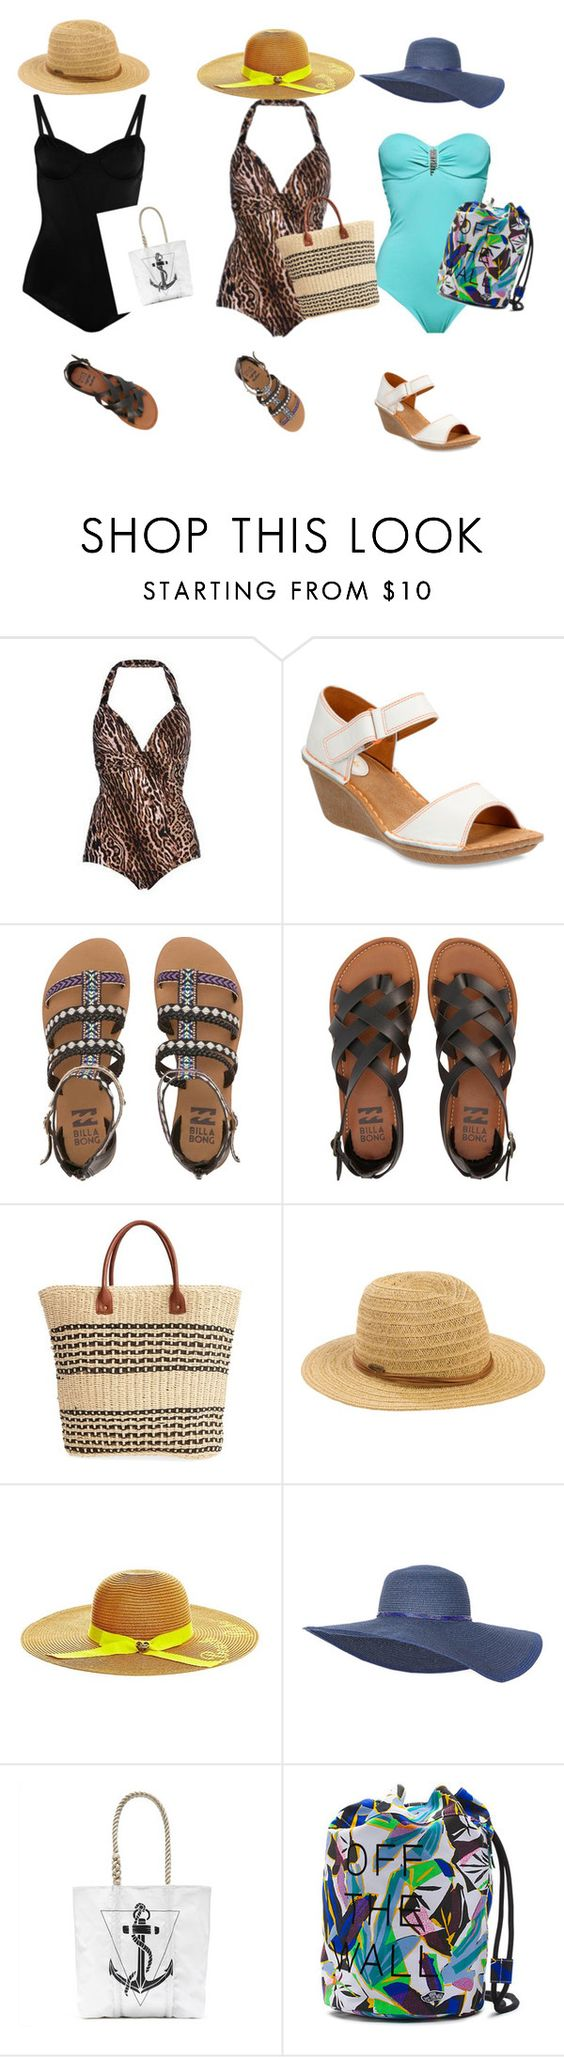 """""""Grandma in the sea!❤️"""" by ermy9 ❤ liked on Polyvore featuring Clarks, Billabong, San Diego Hat Co., Betsey Johnson, Alex and Ani and Vans"""